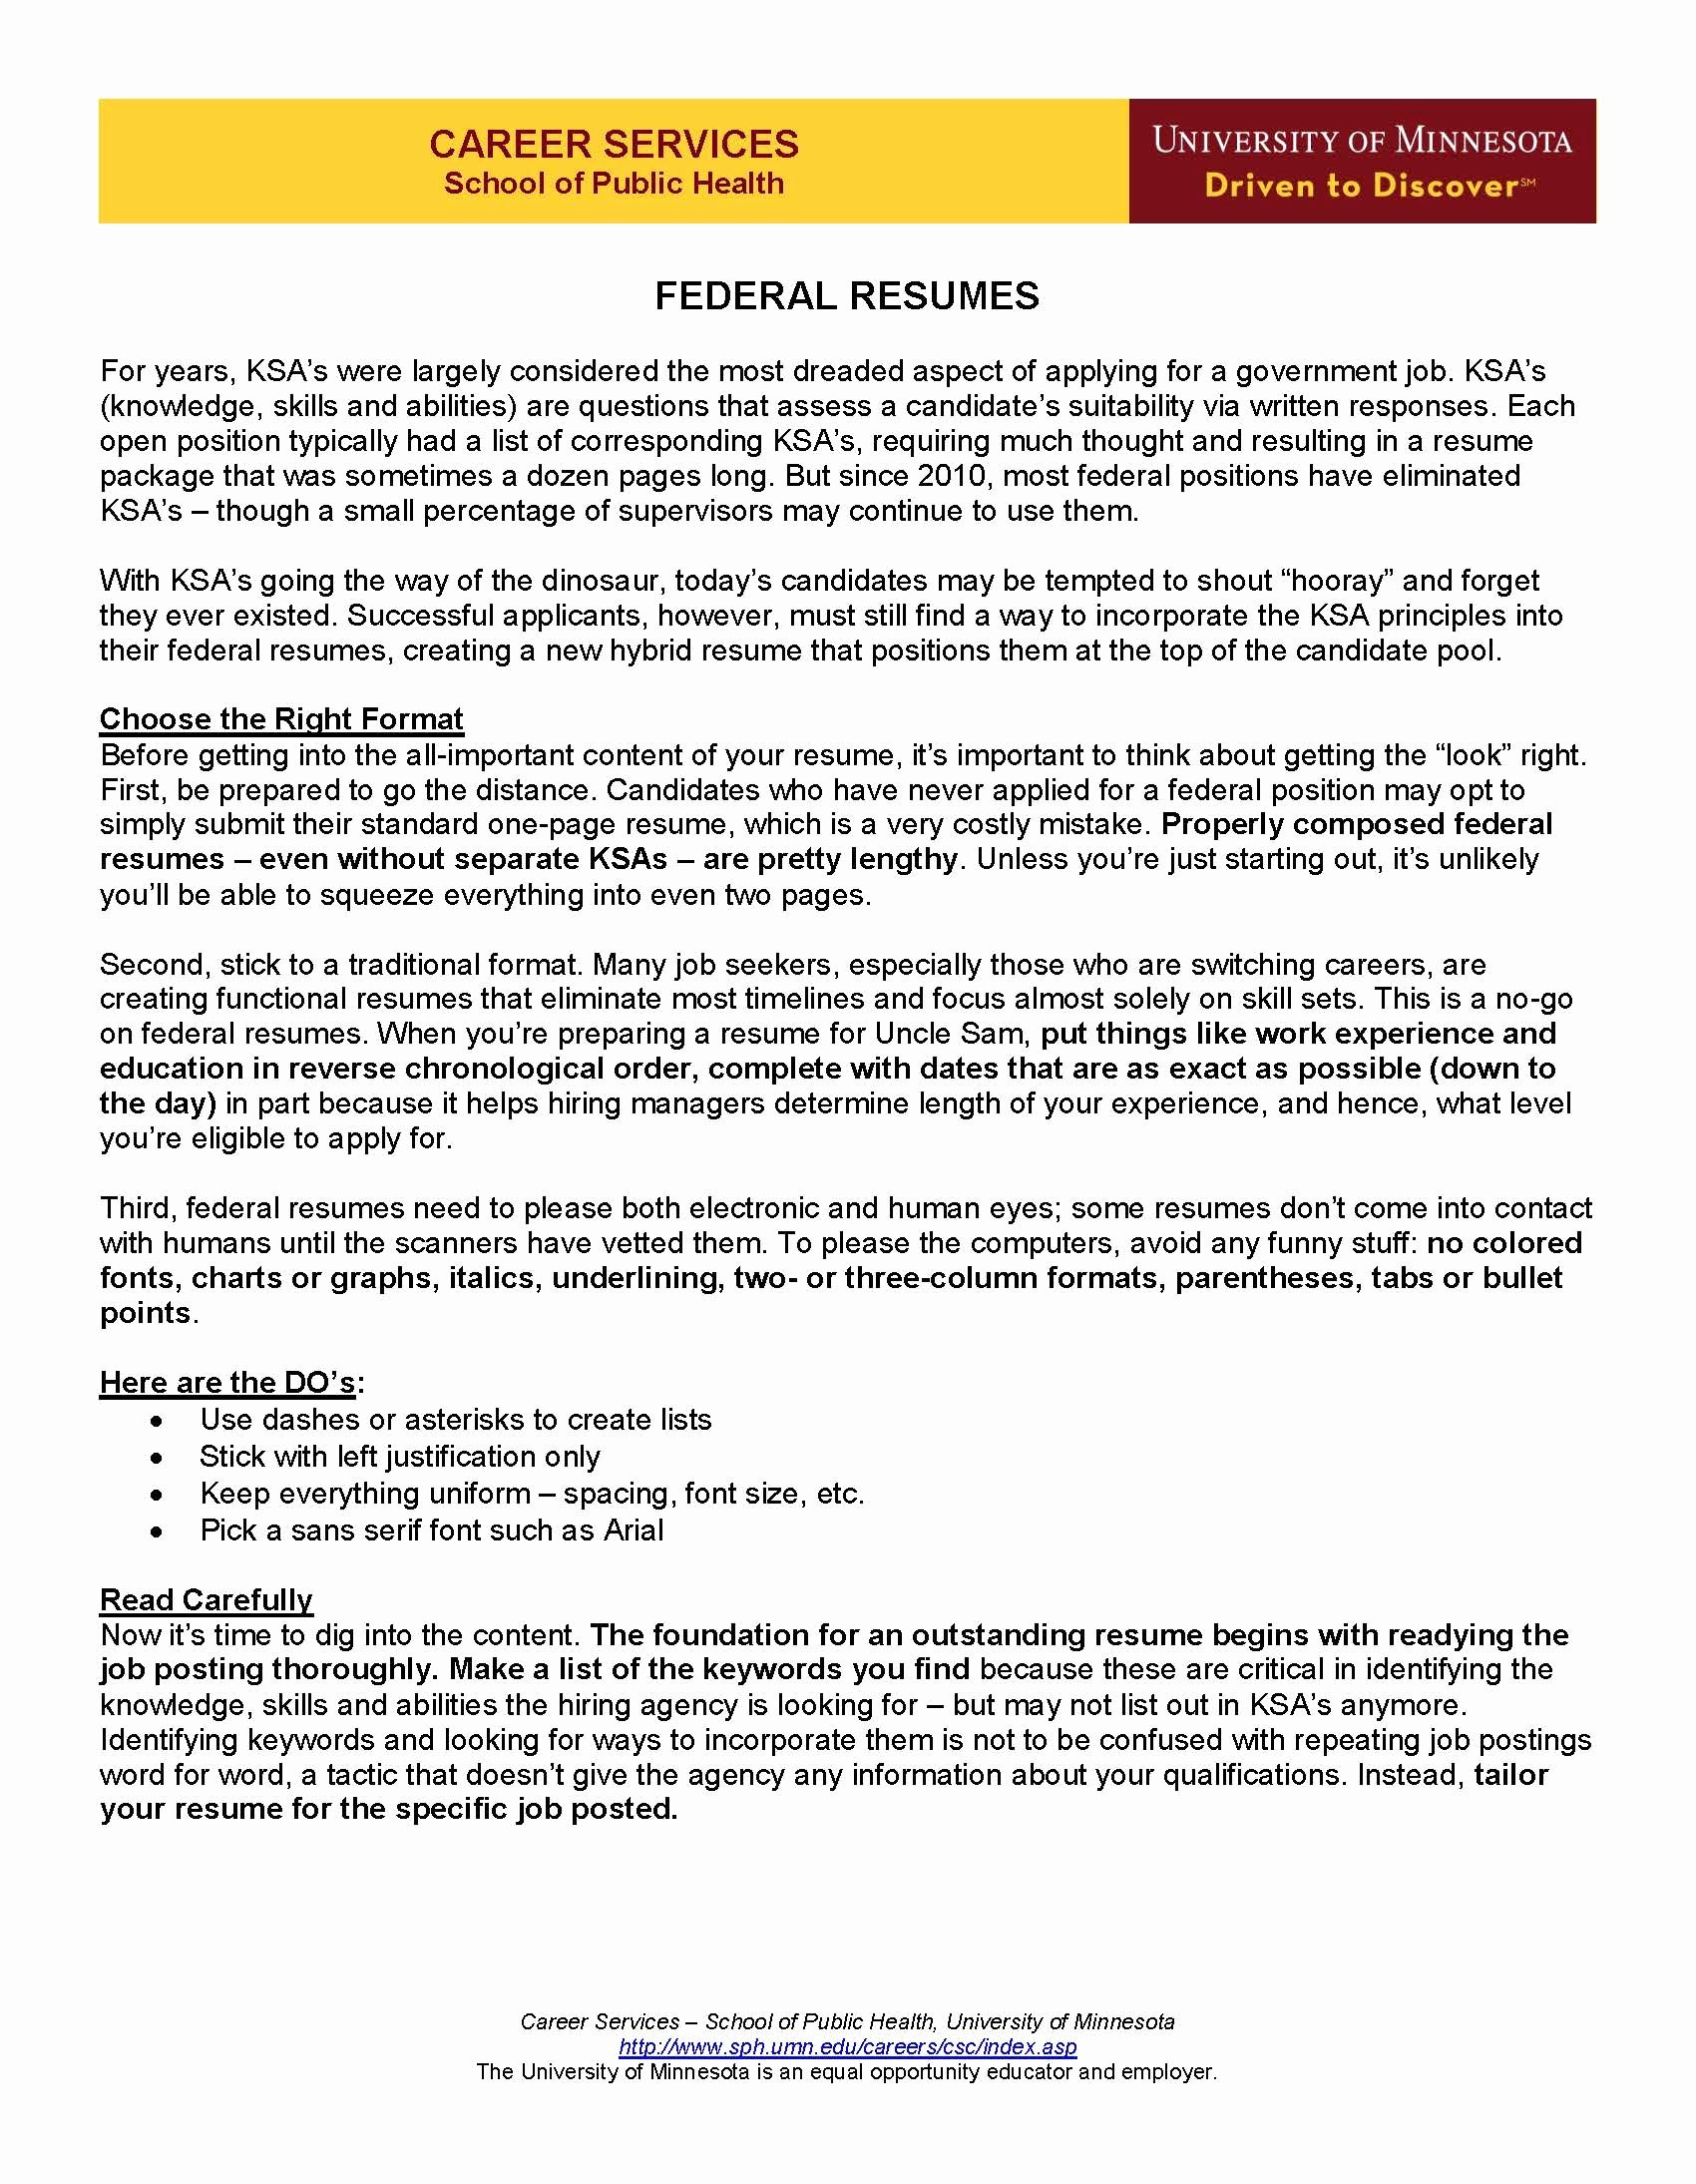 Sample Resume for Federal Job Luxury Federal Resumes Page 1 Resume Guide